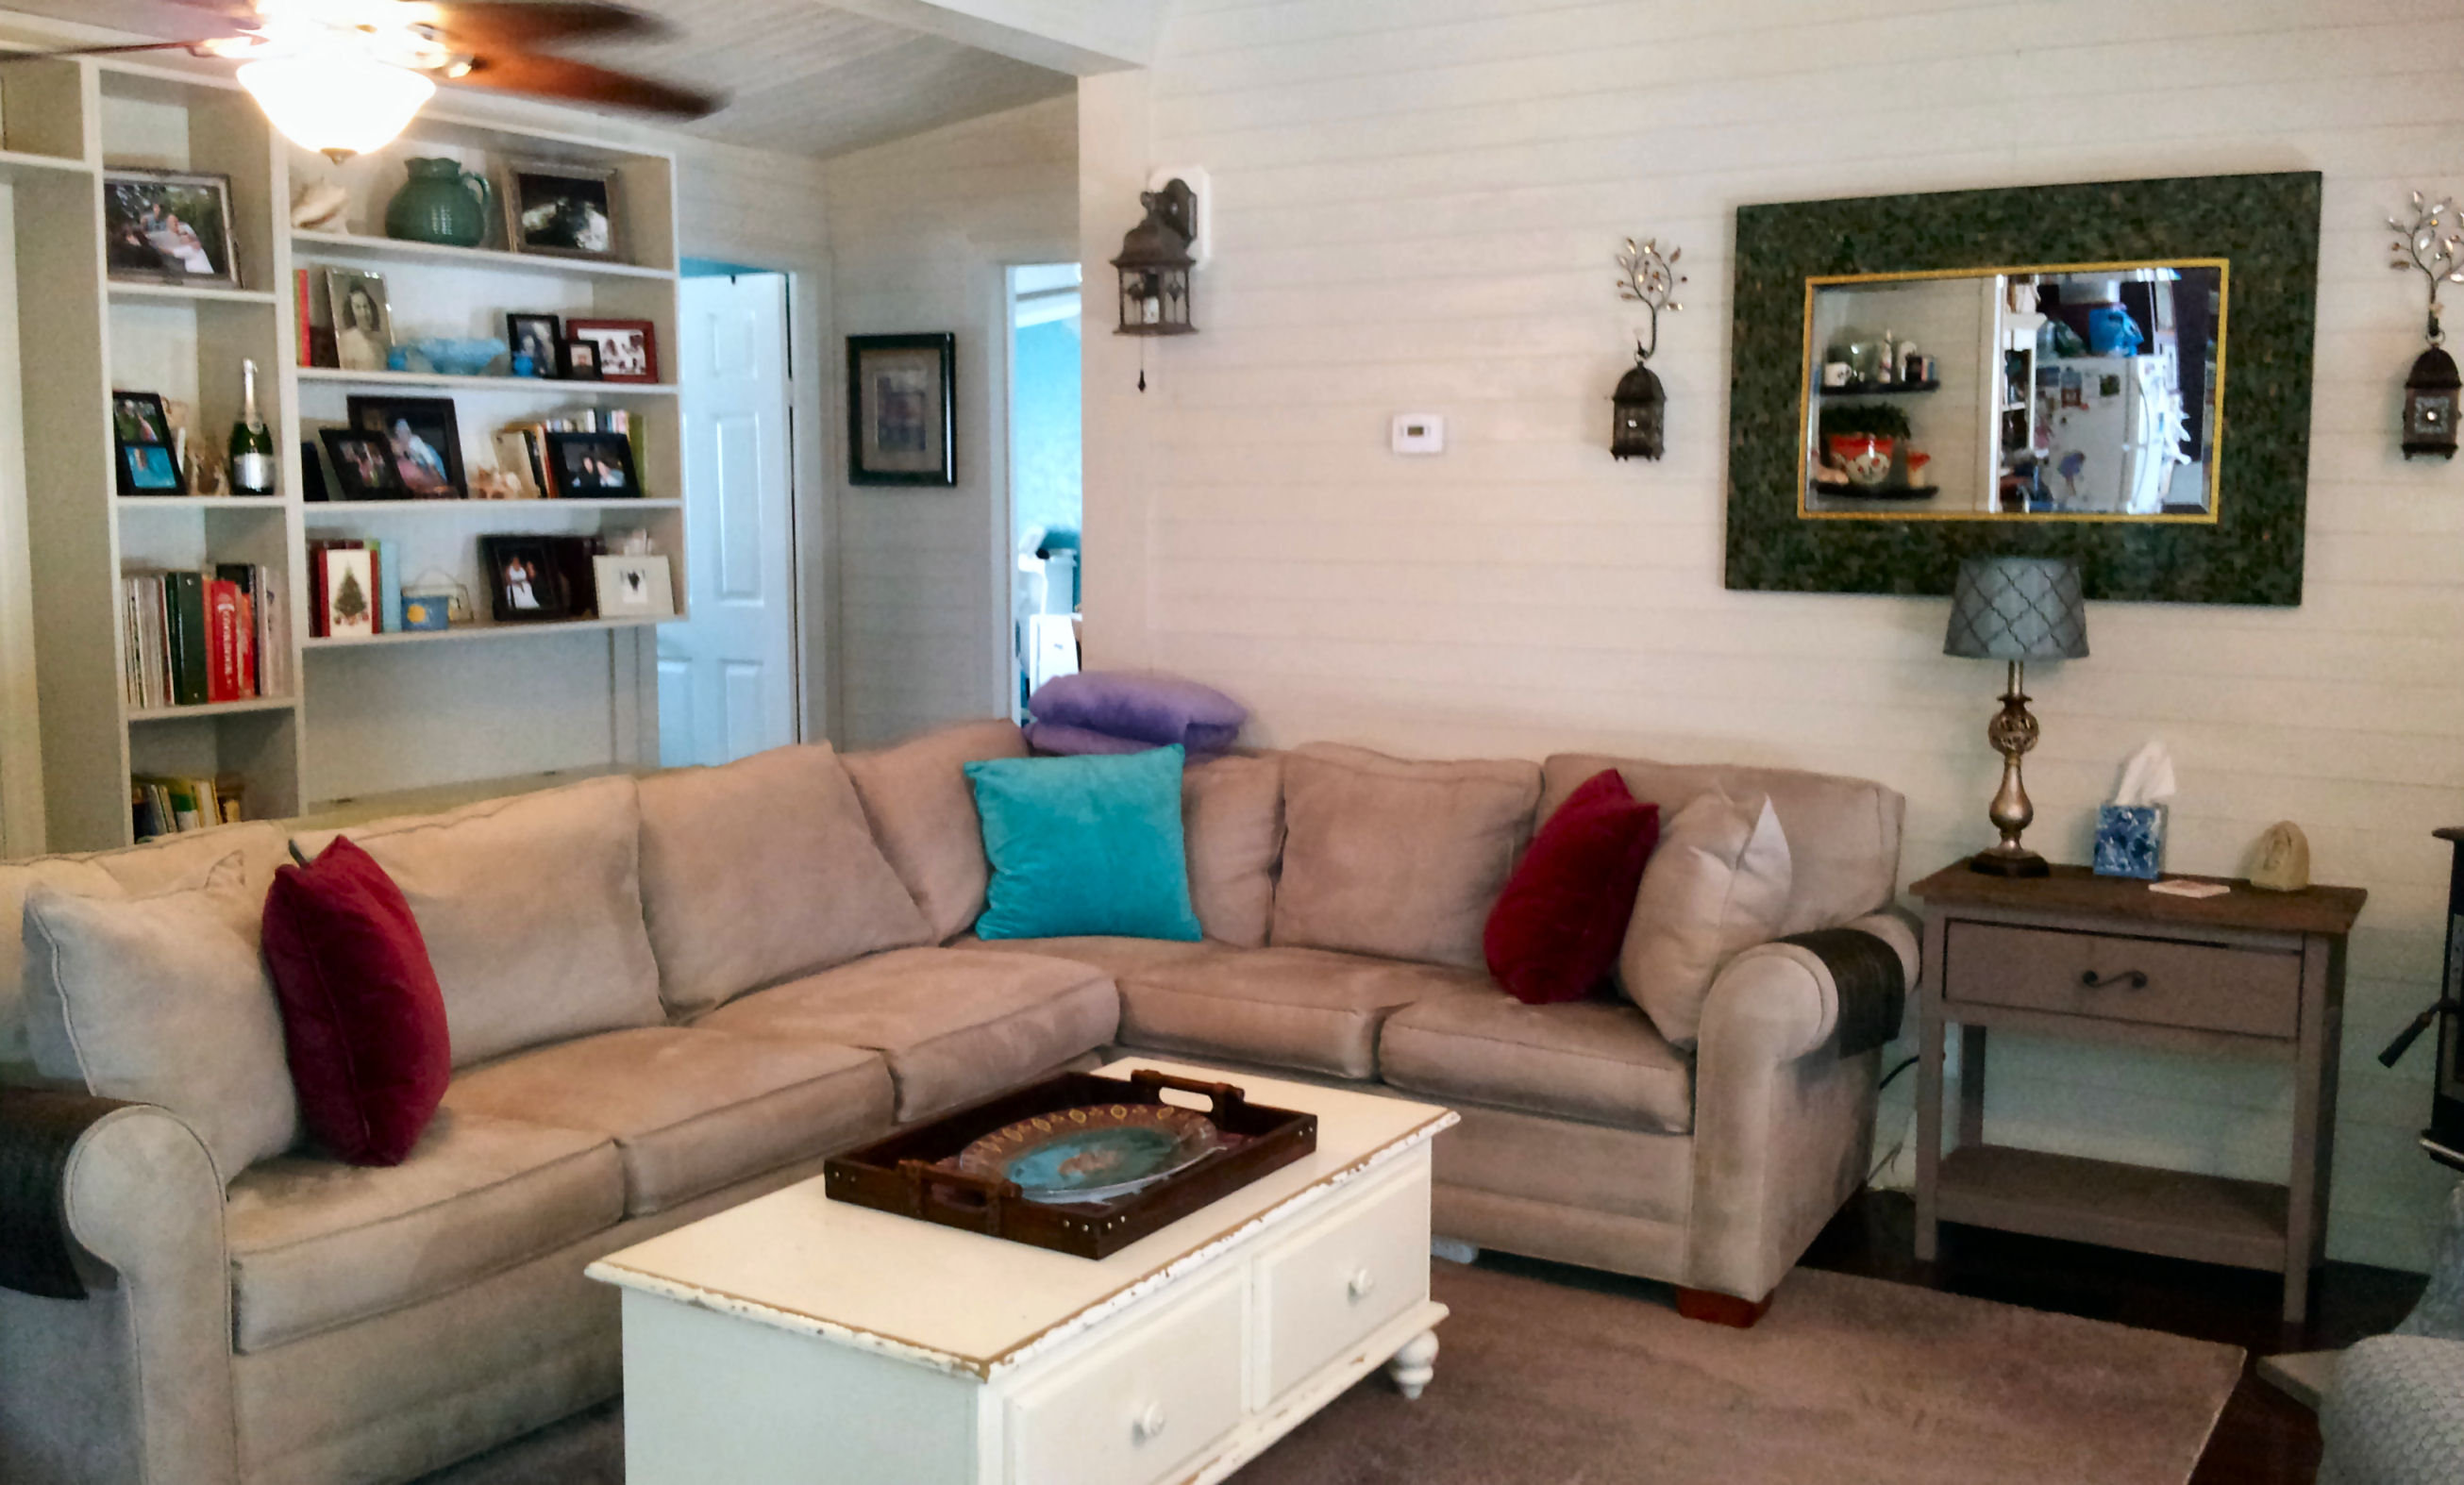 Mobile home living room remodel the finale my mobile home makeover for House and home living room ideas